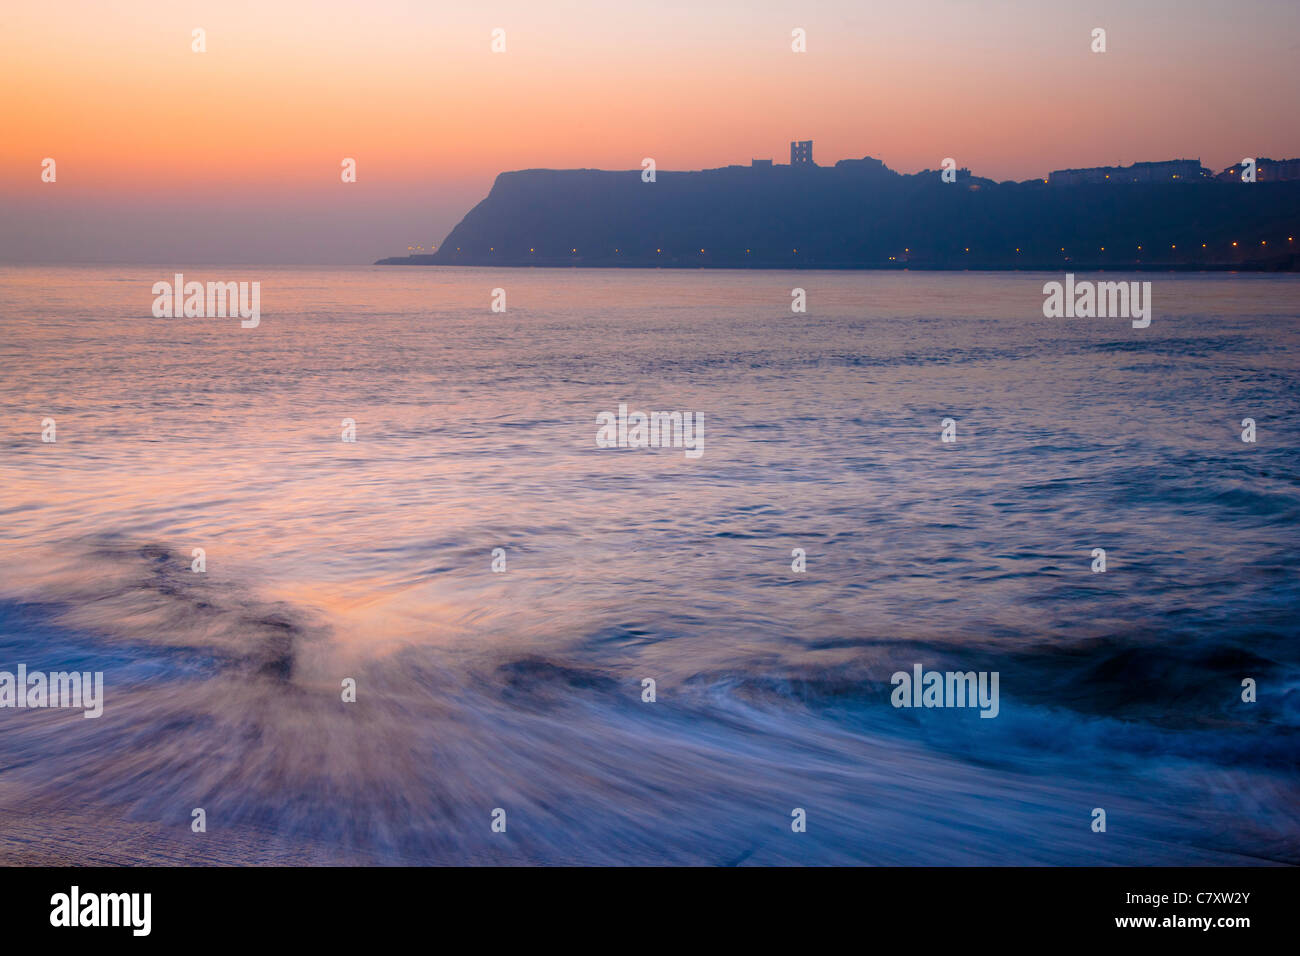 Misty Dawn Scarborough North Bay, North Yorkshire - Stock Image